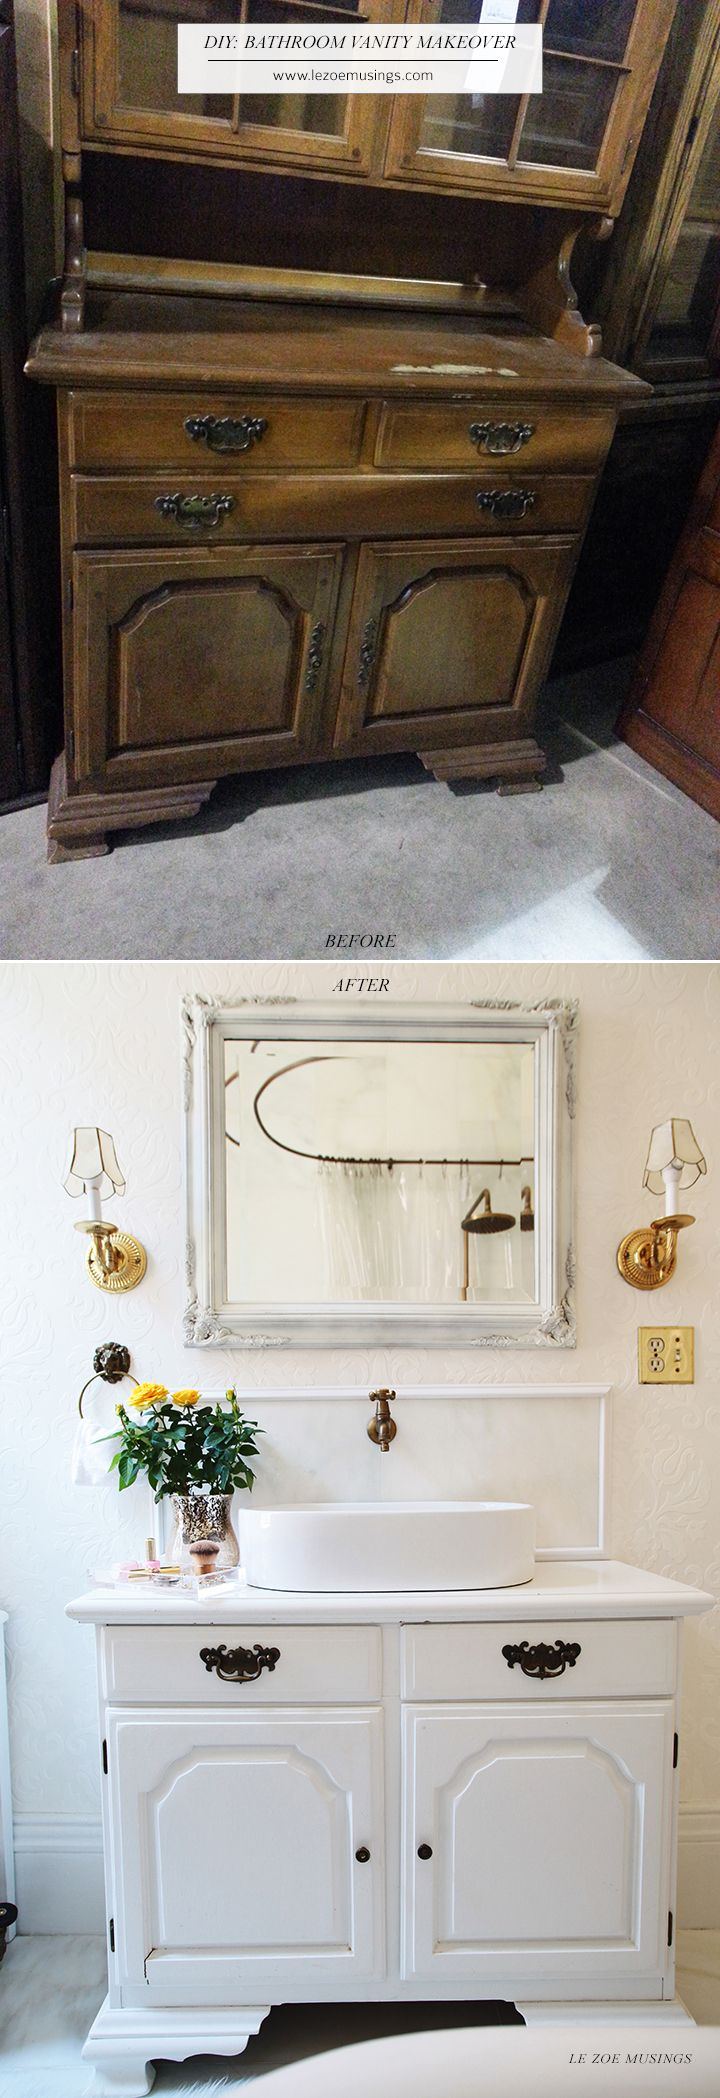 Unusual Ada Grab Bars For Bathrooms Huge Master Bath Remodel Plans Shaped Fiberglass Bathtub Bottom Crack Repair Inlays Moen Single Lever Bathroom Faucet Repair Old Bronze Waterfall Bathroom Sink Faucets RedGlass Vessel Bathroom Sinks 1000  Ideas About Bathroom Vanity Makeover On Pinterest | Bathroom ..